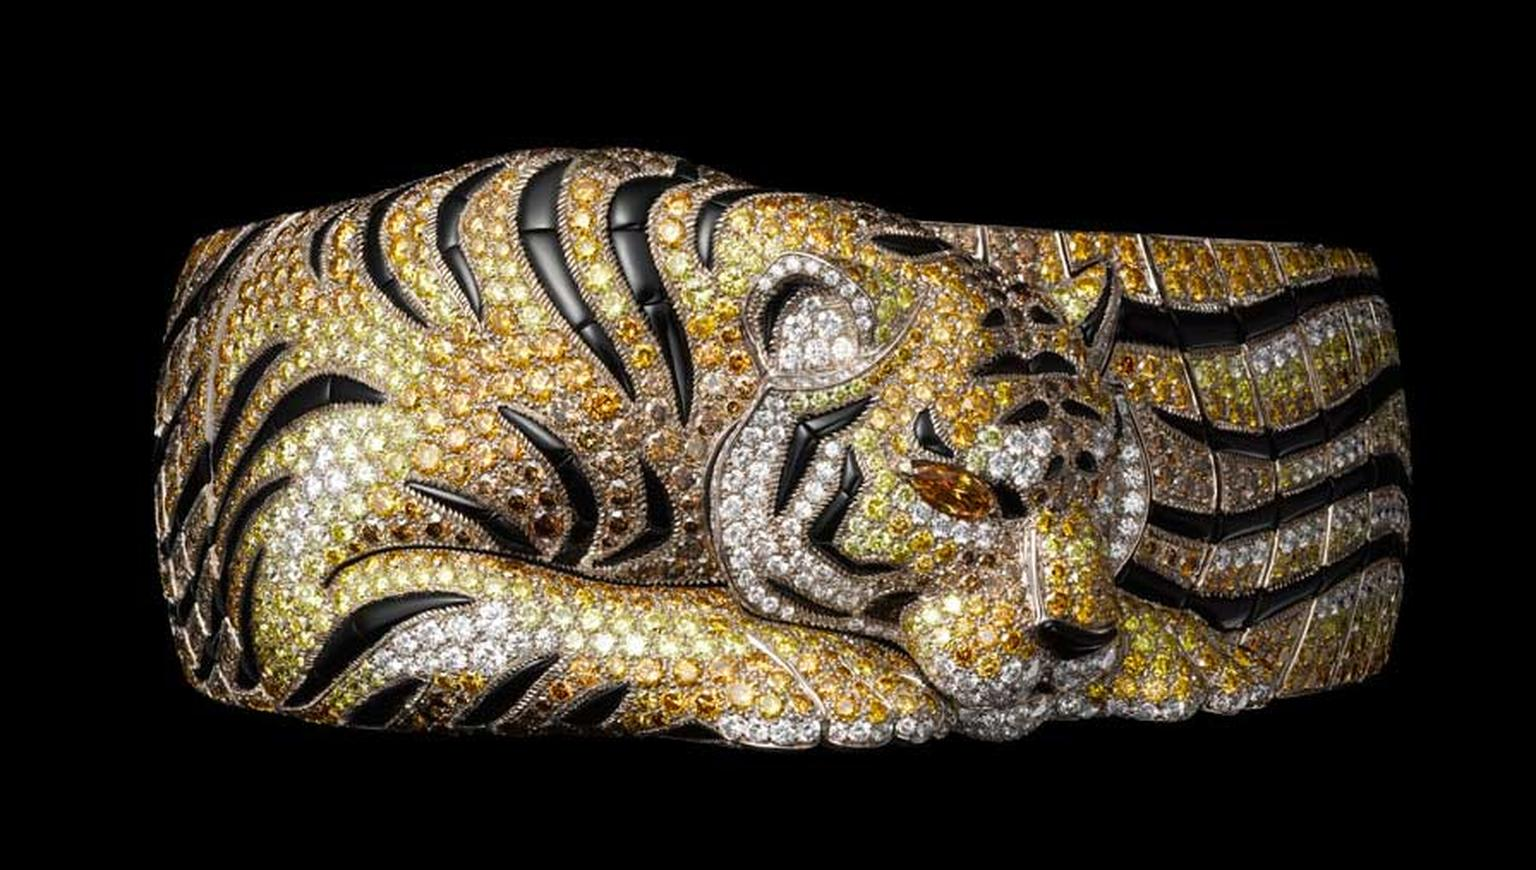 Cartier Solar tiger bracelet in white gold with brown, orange and yellow diamonds, onyx, yellow-orange diamond eyes, brilliants